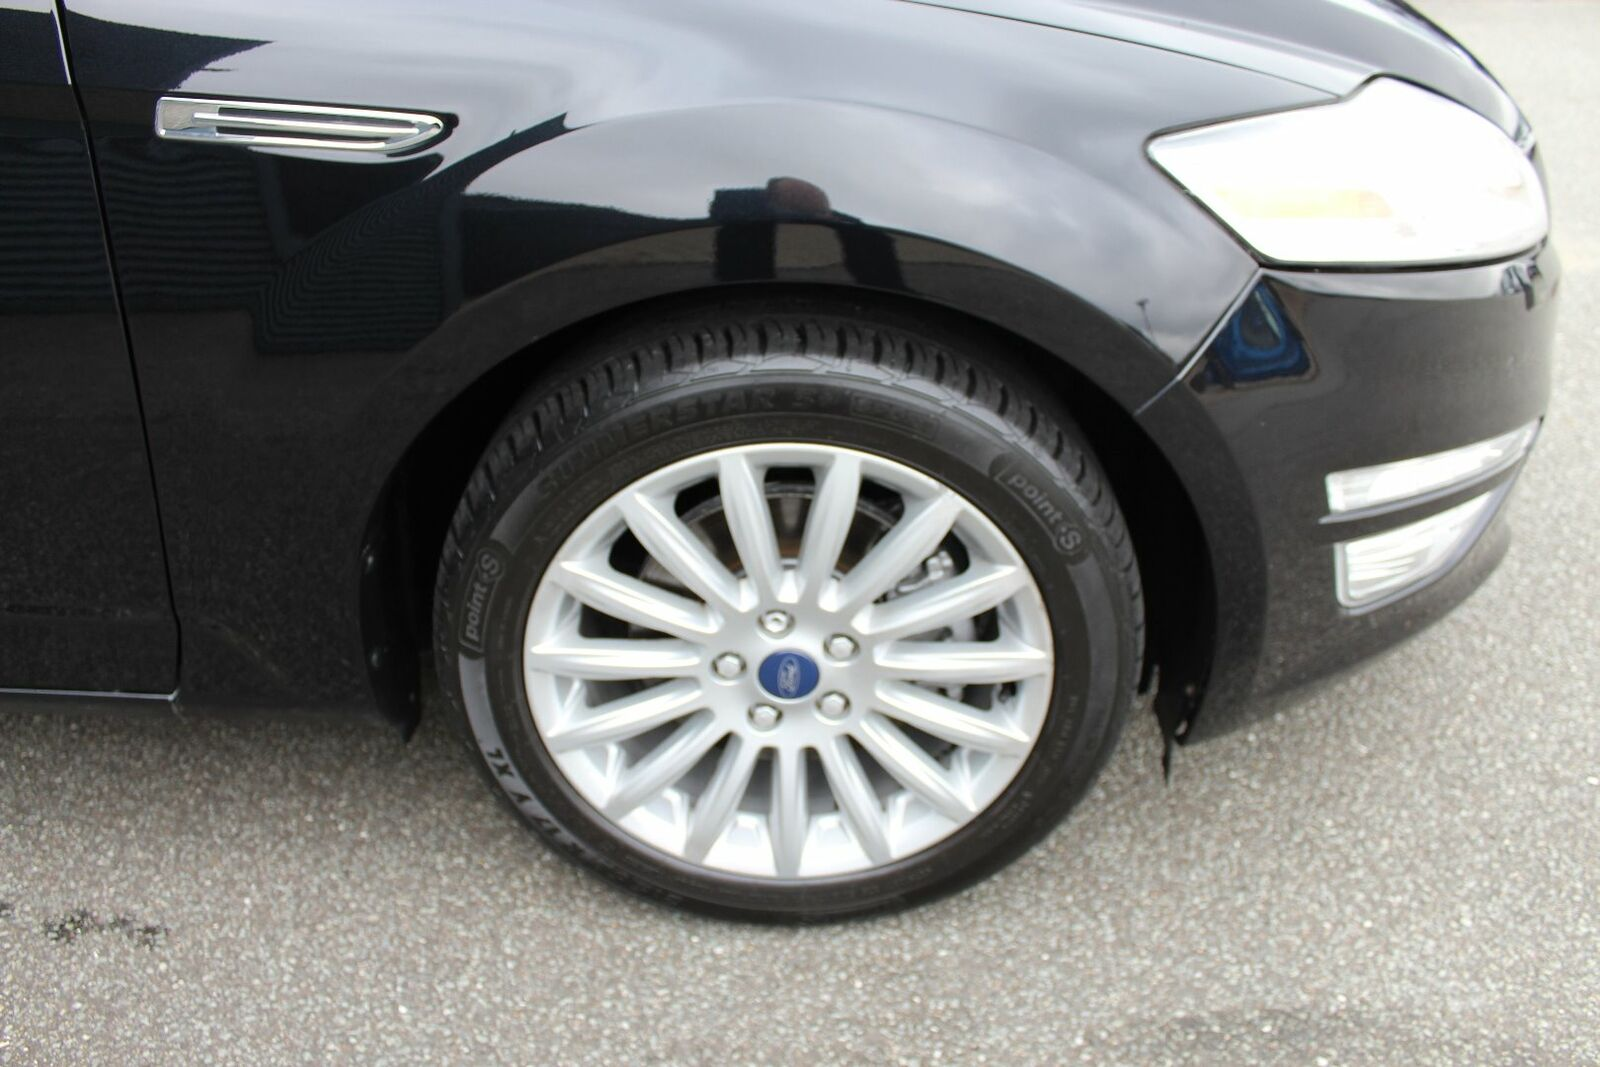 Ford Mondeo 2,0 TDCi 140 Collection stc. aut - billede 6